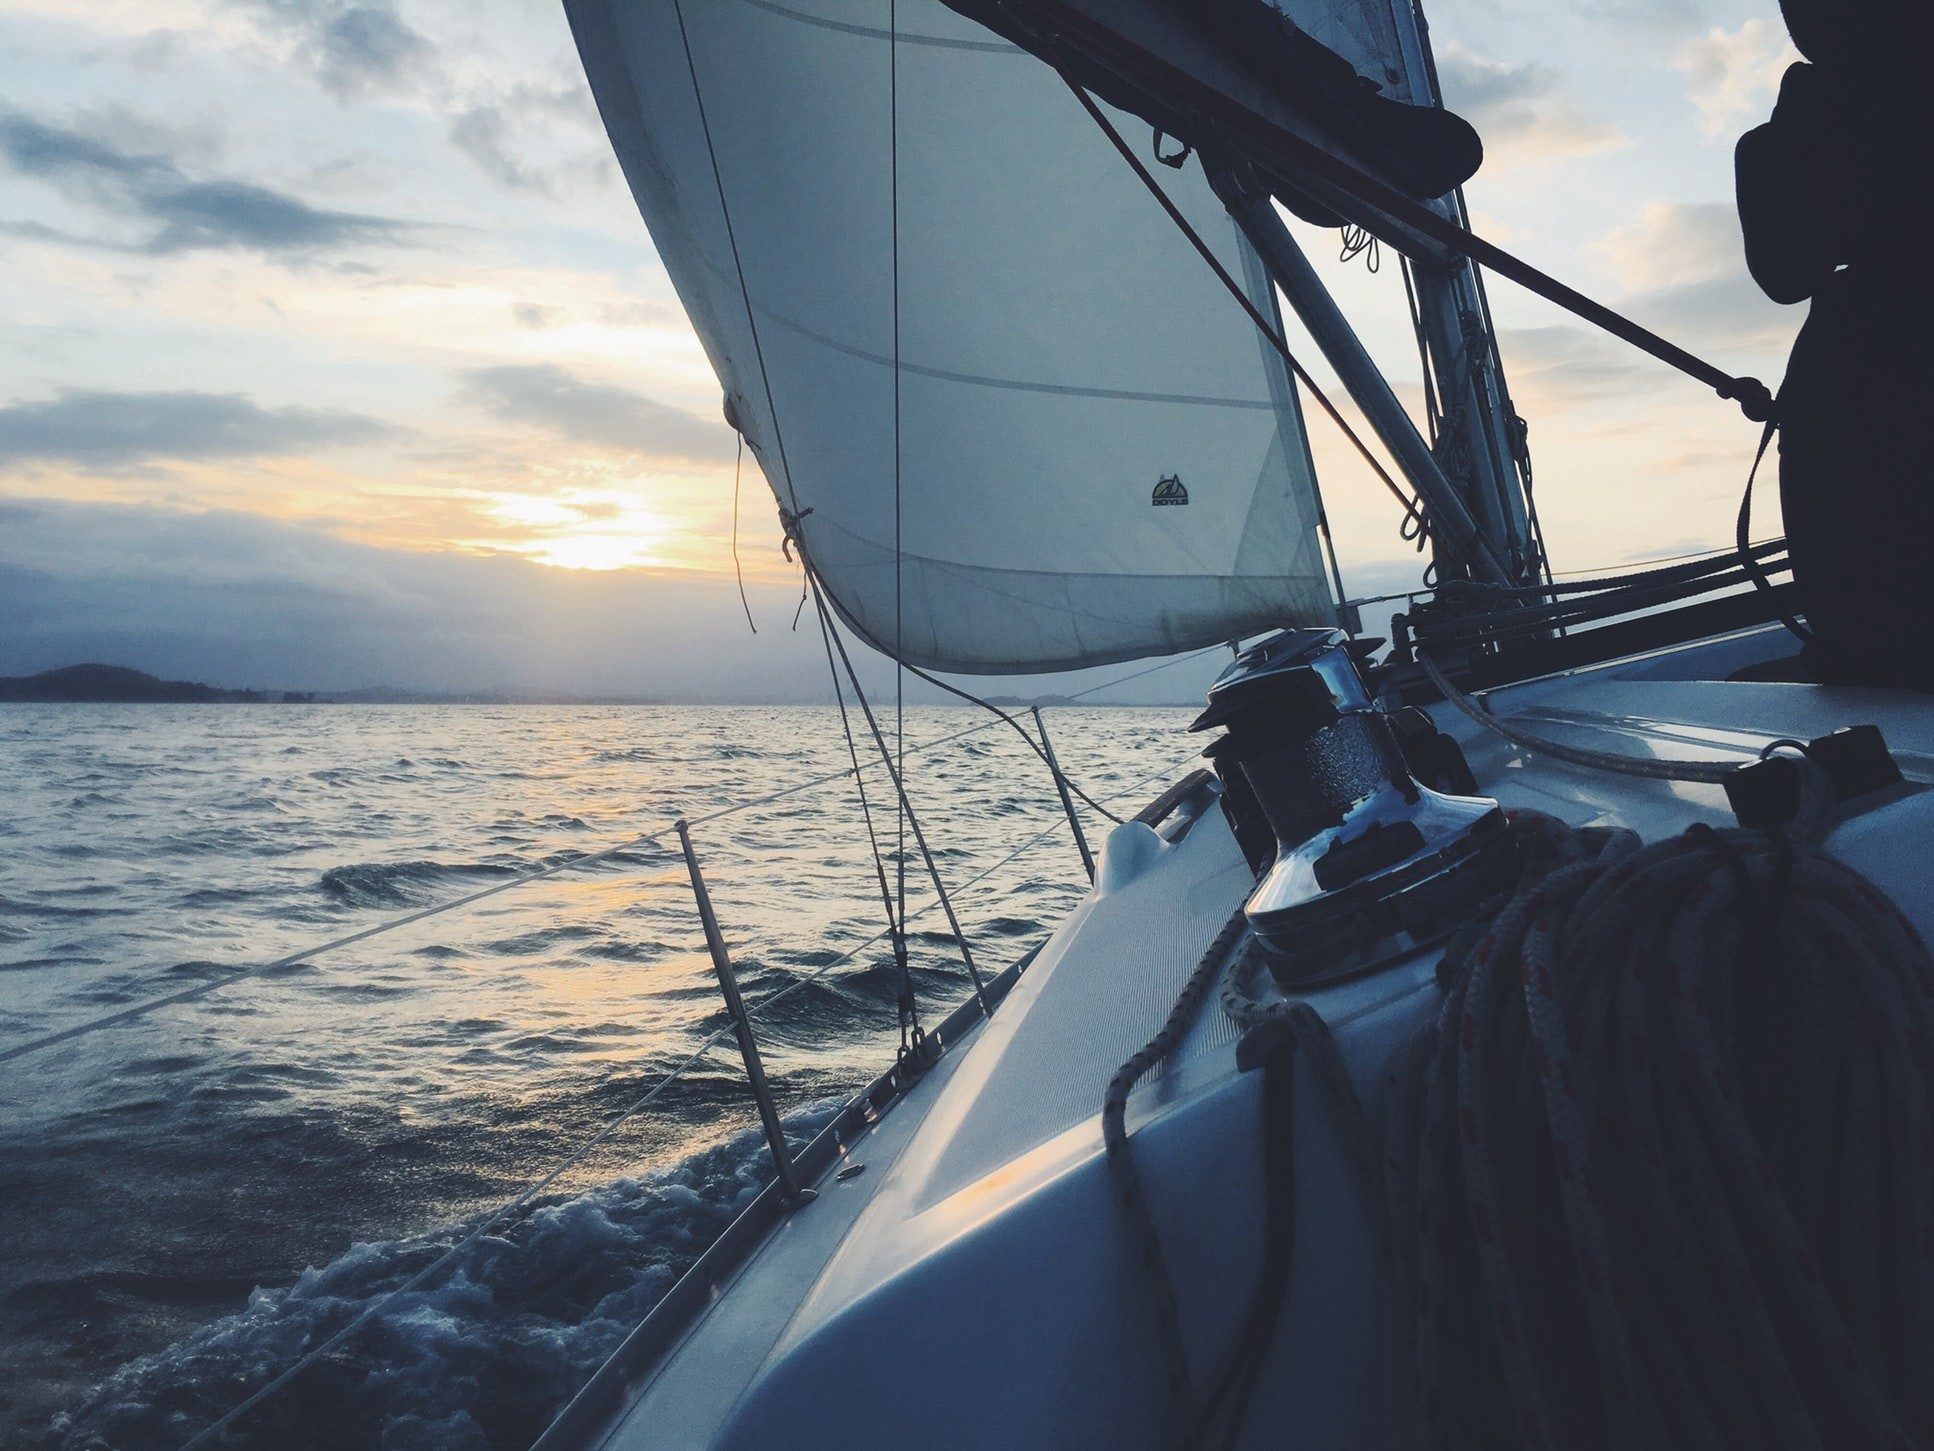 View of a headland at dusk from under the foresail of a yacht on starboard tack.